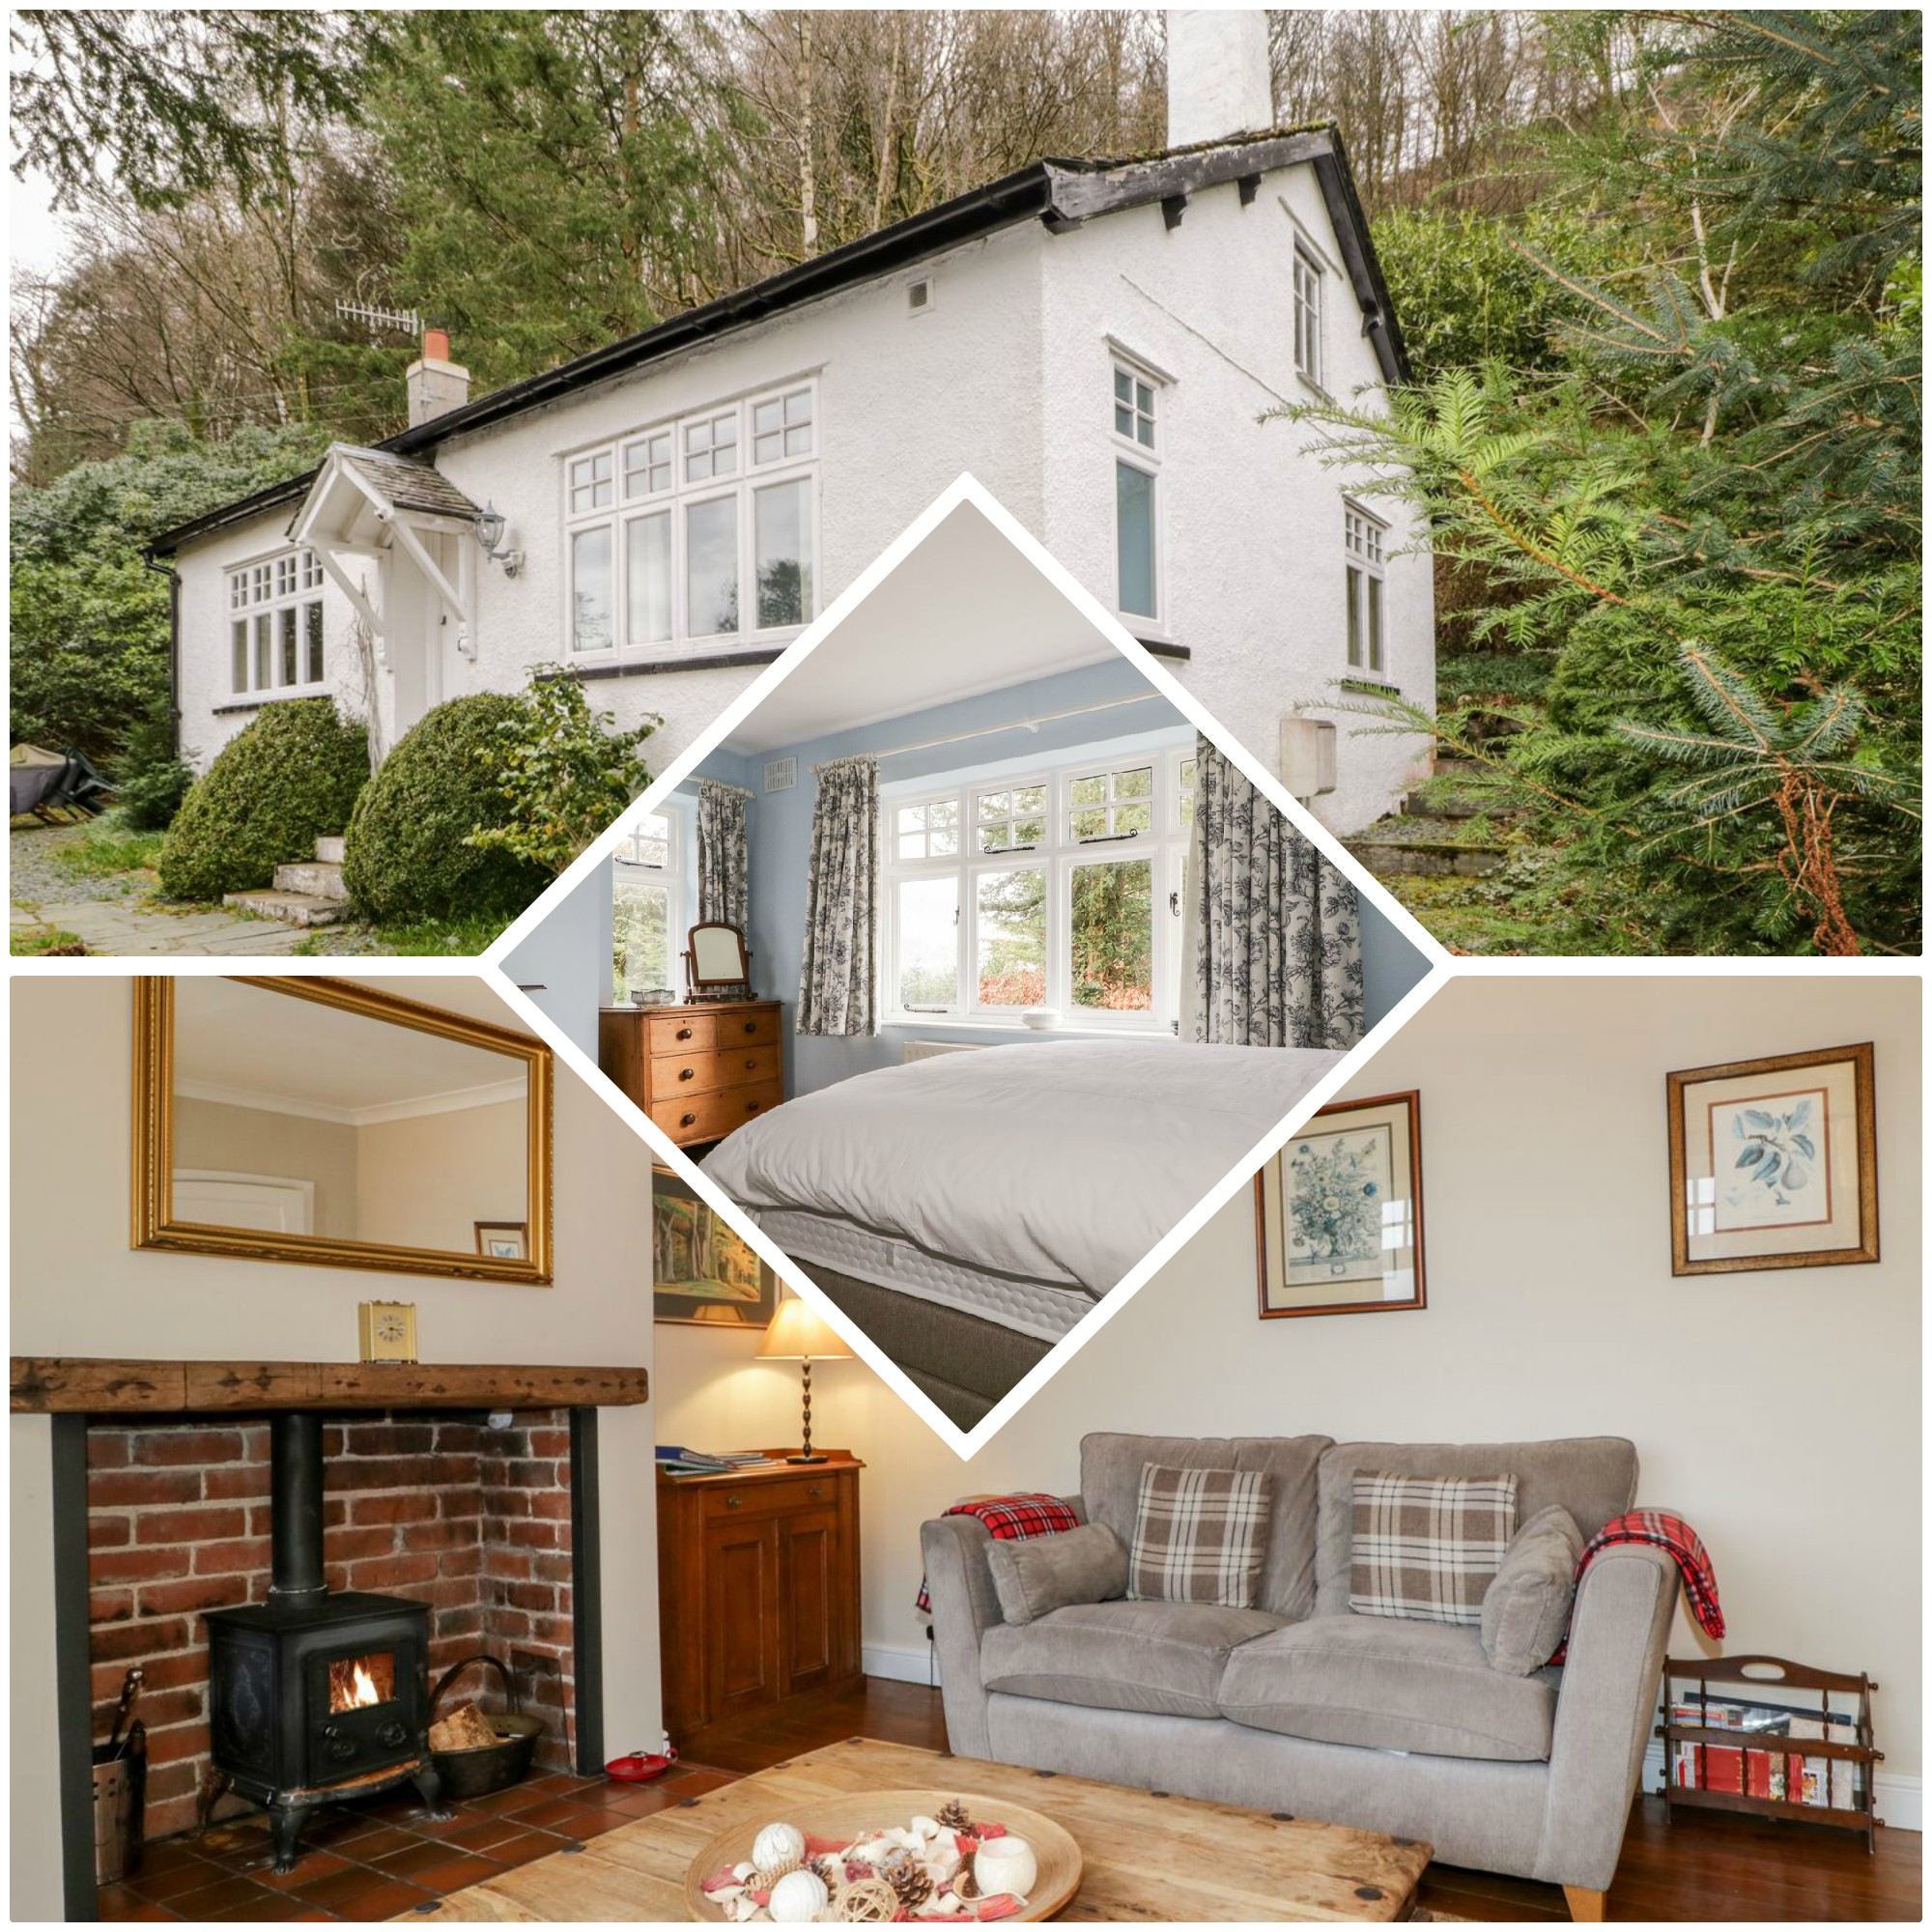 definitely a little more off the beaten track, this lovely Lakeland cottage has everything for a family of 4